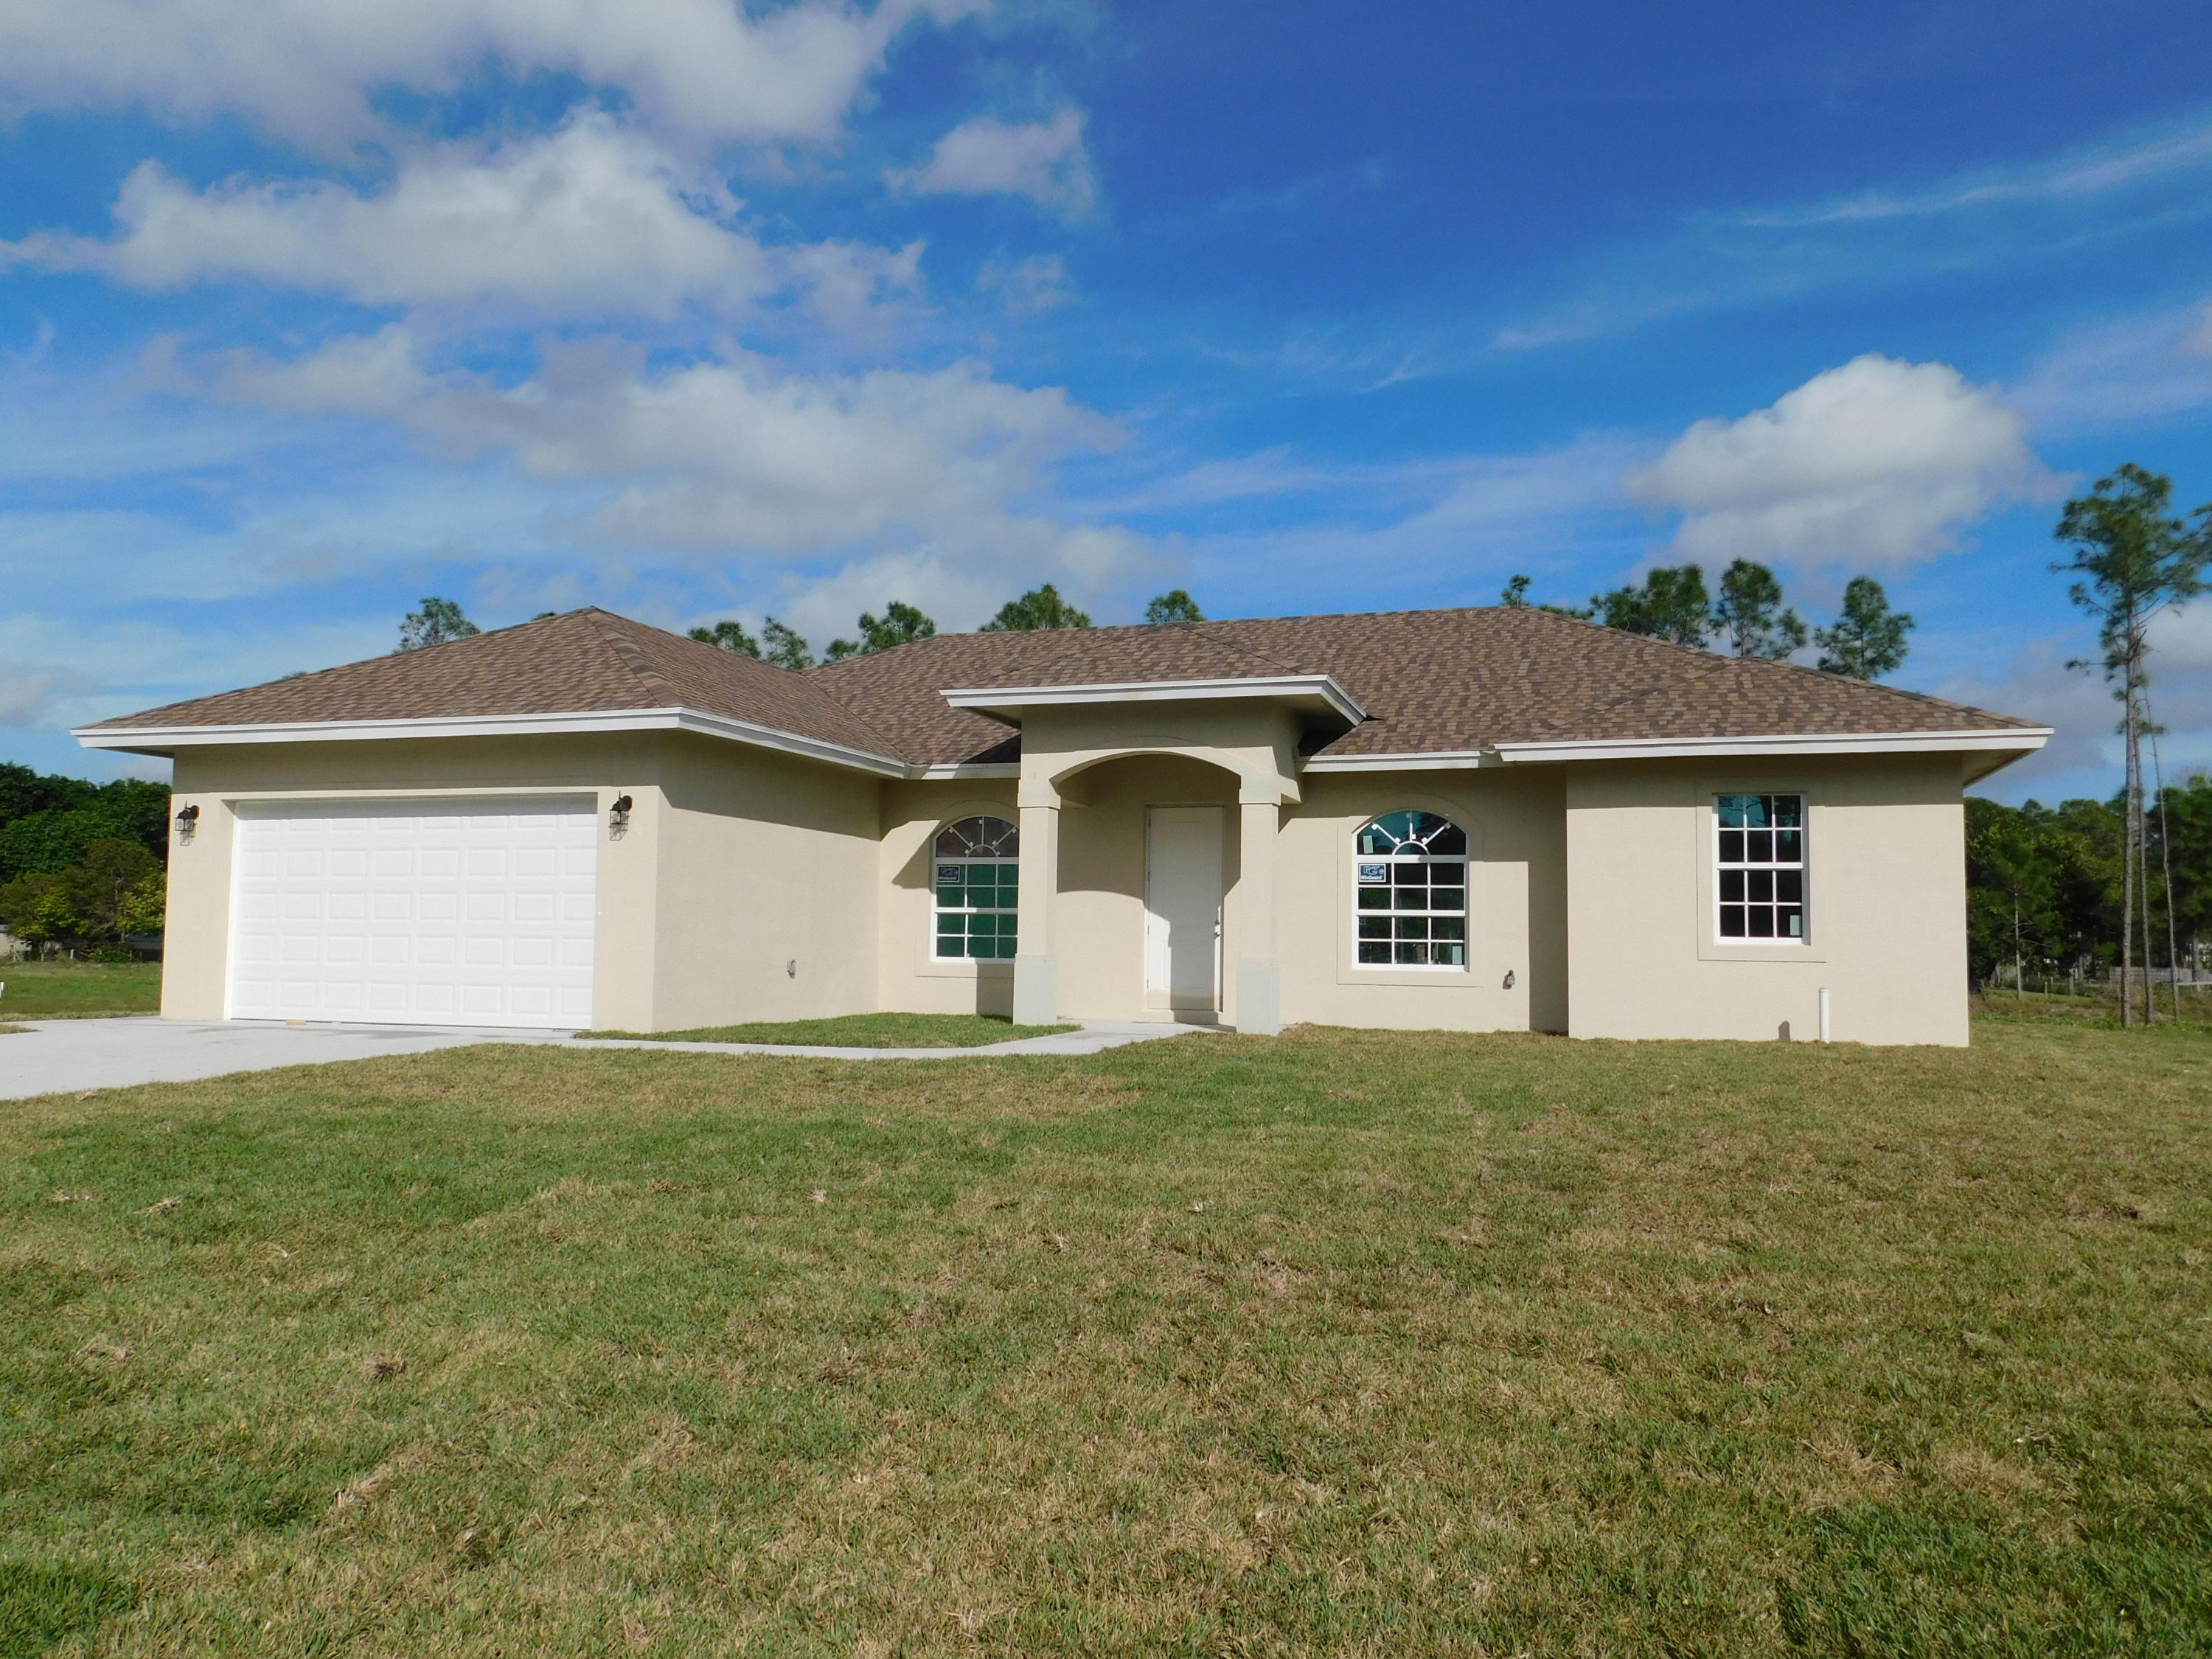 17915 47th Court, Loxahatchee in Palm Beach County, FL 33470 Home for Sale